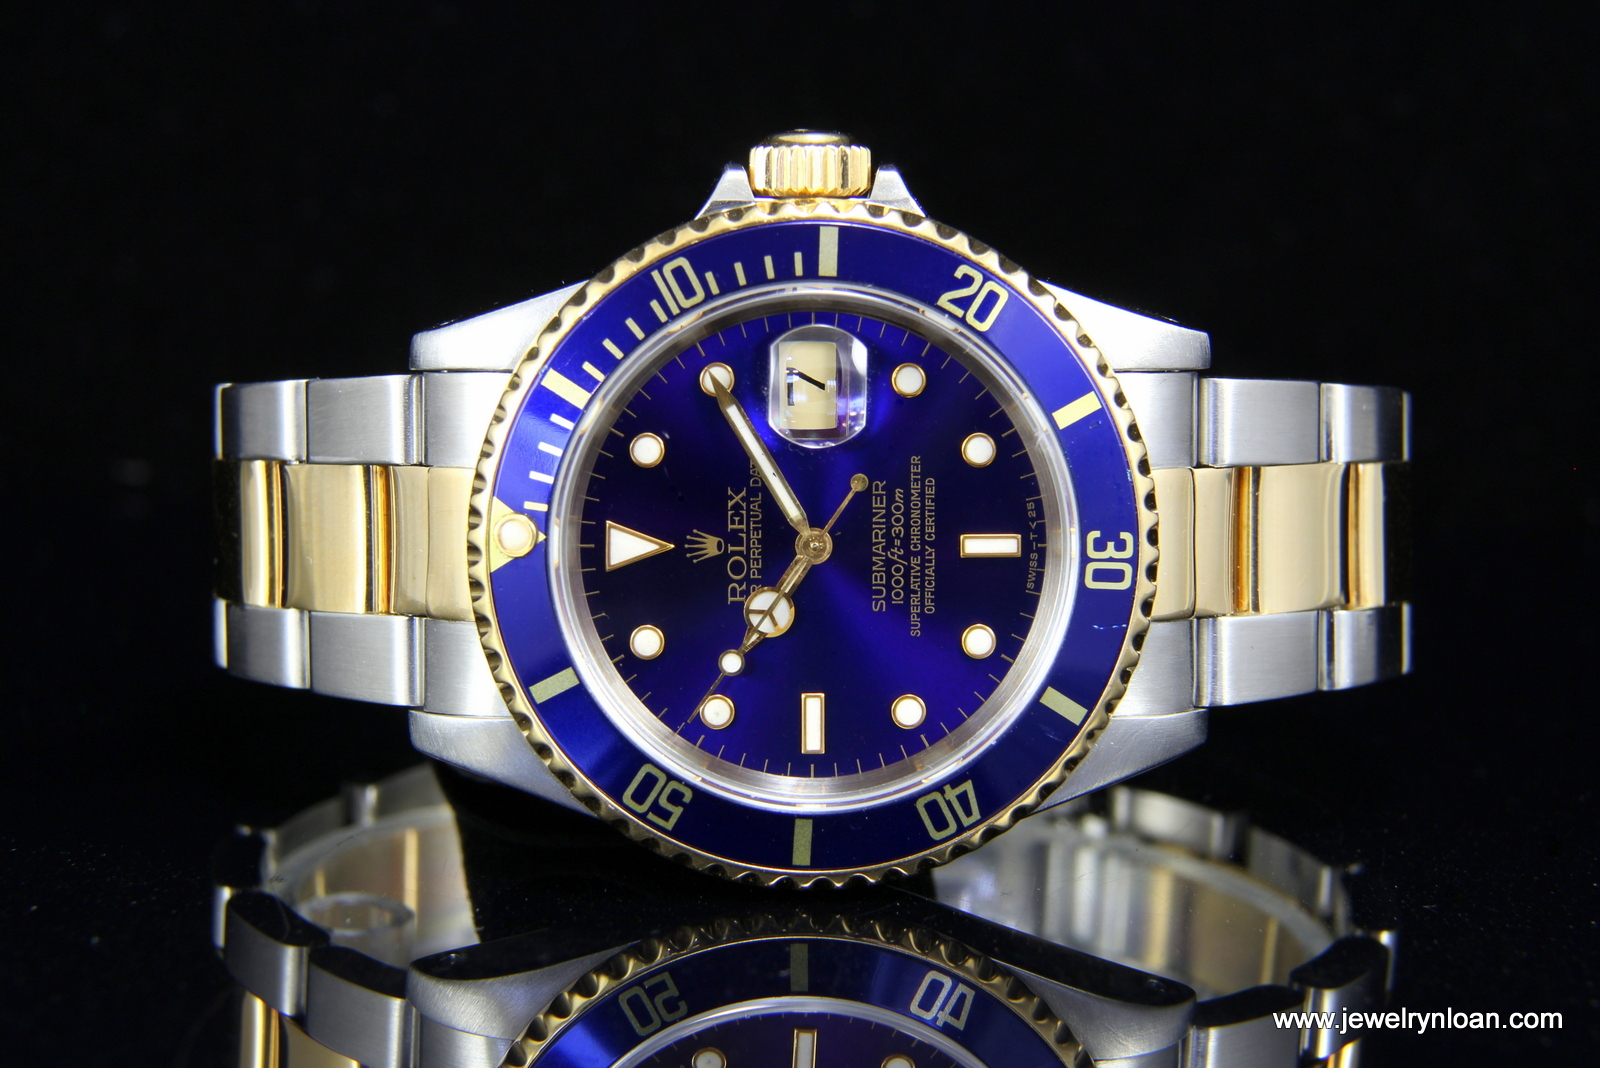 Buy Rolex Sell Rolex Newport Beach Orange County